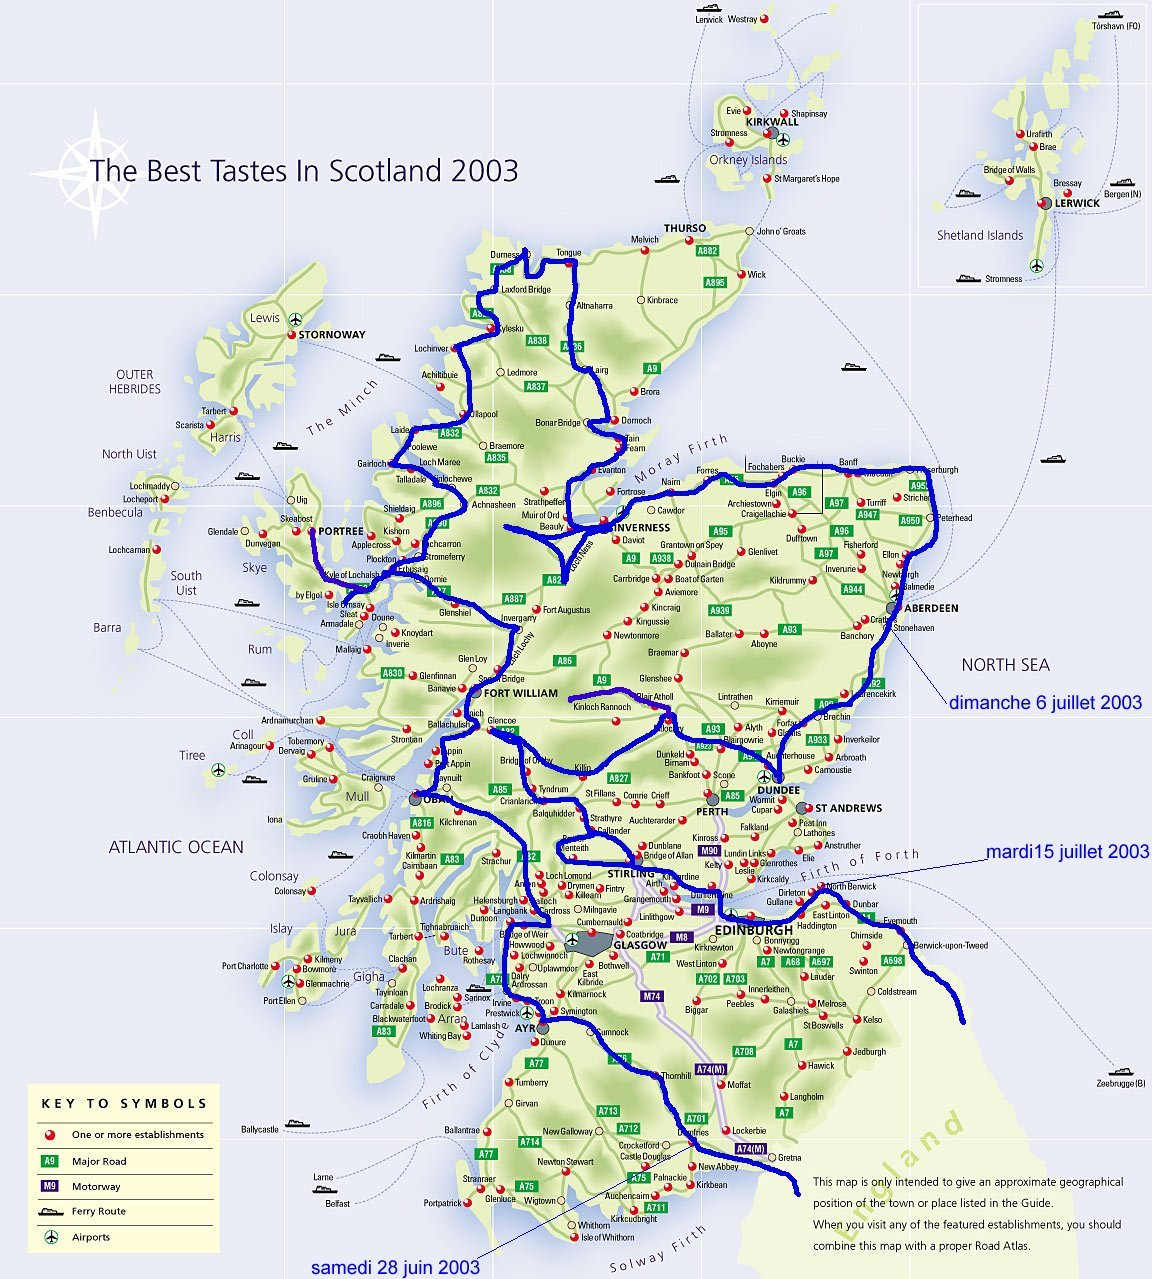 ecosse_scotland_large_map.